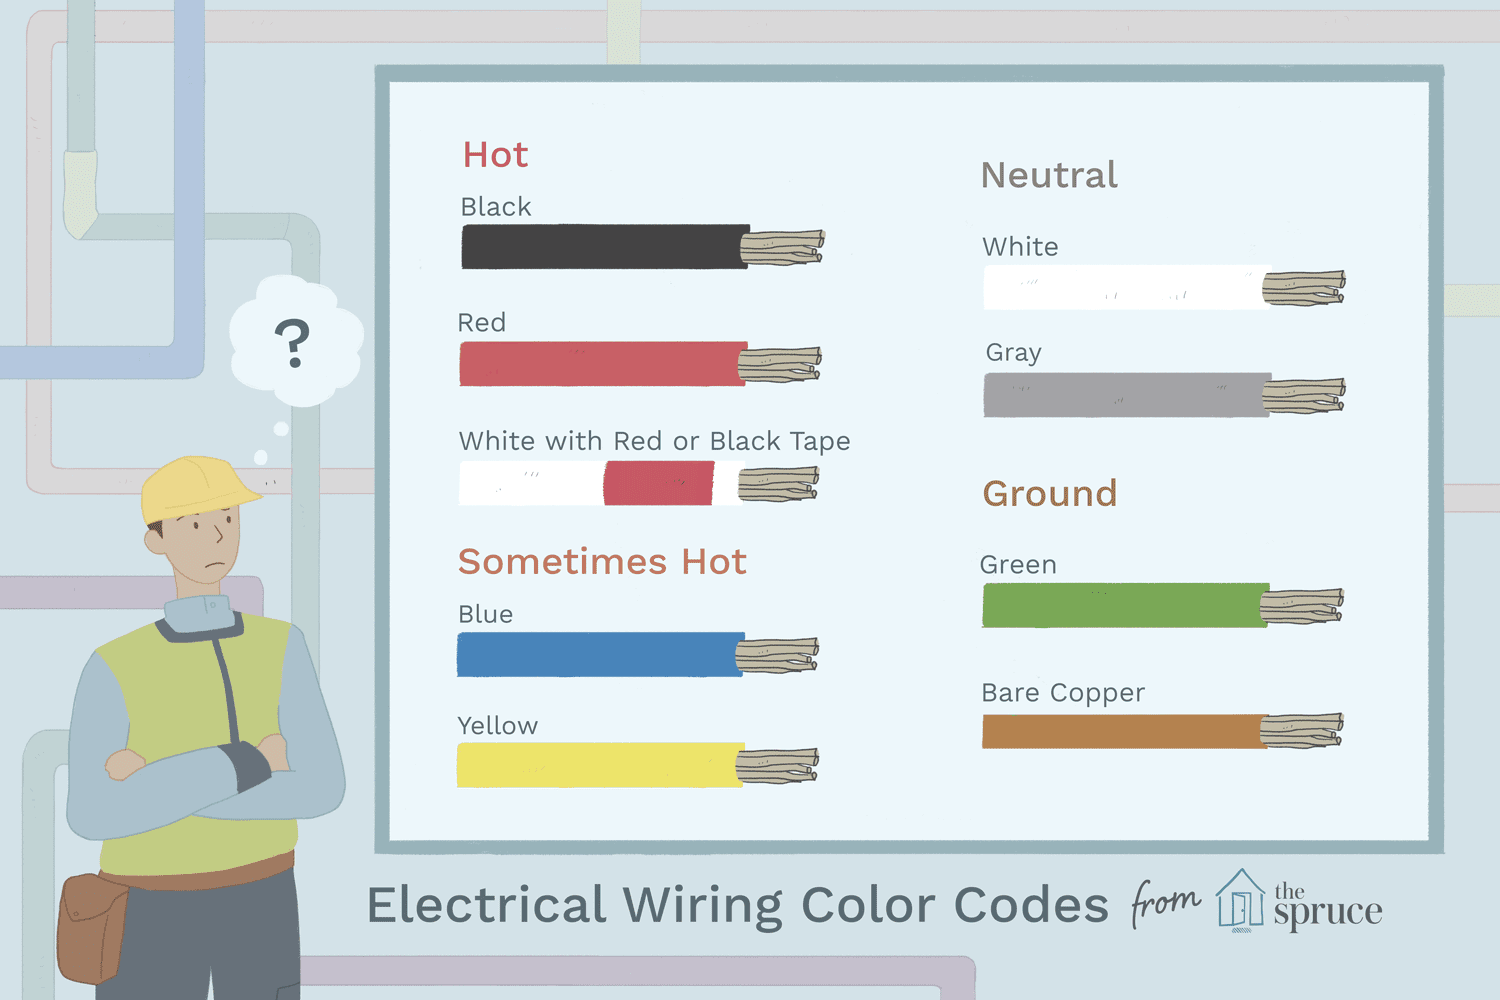 3 5mm jack wiring diagram colors electrical wiring color coding system #10